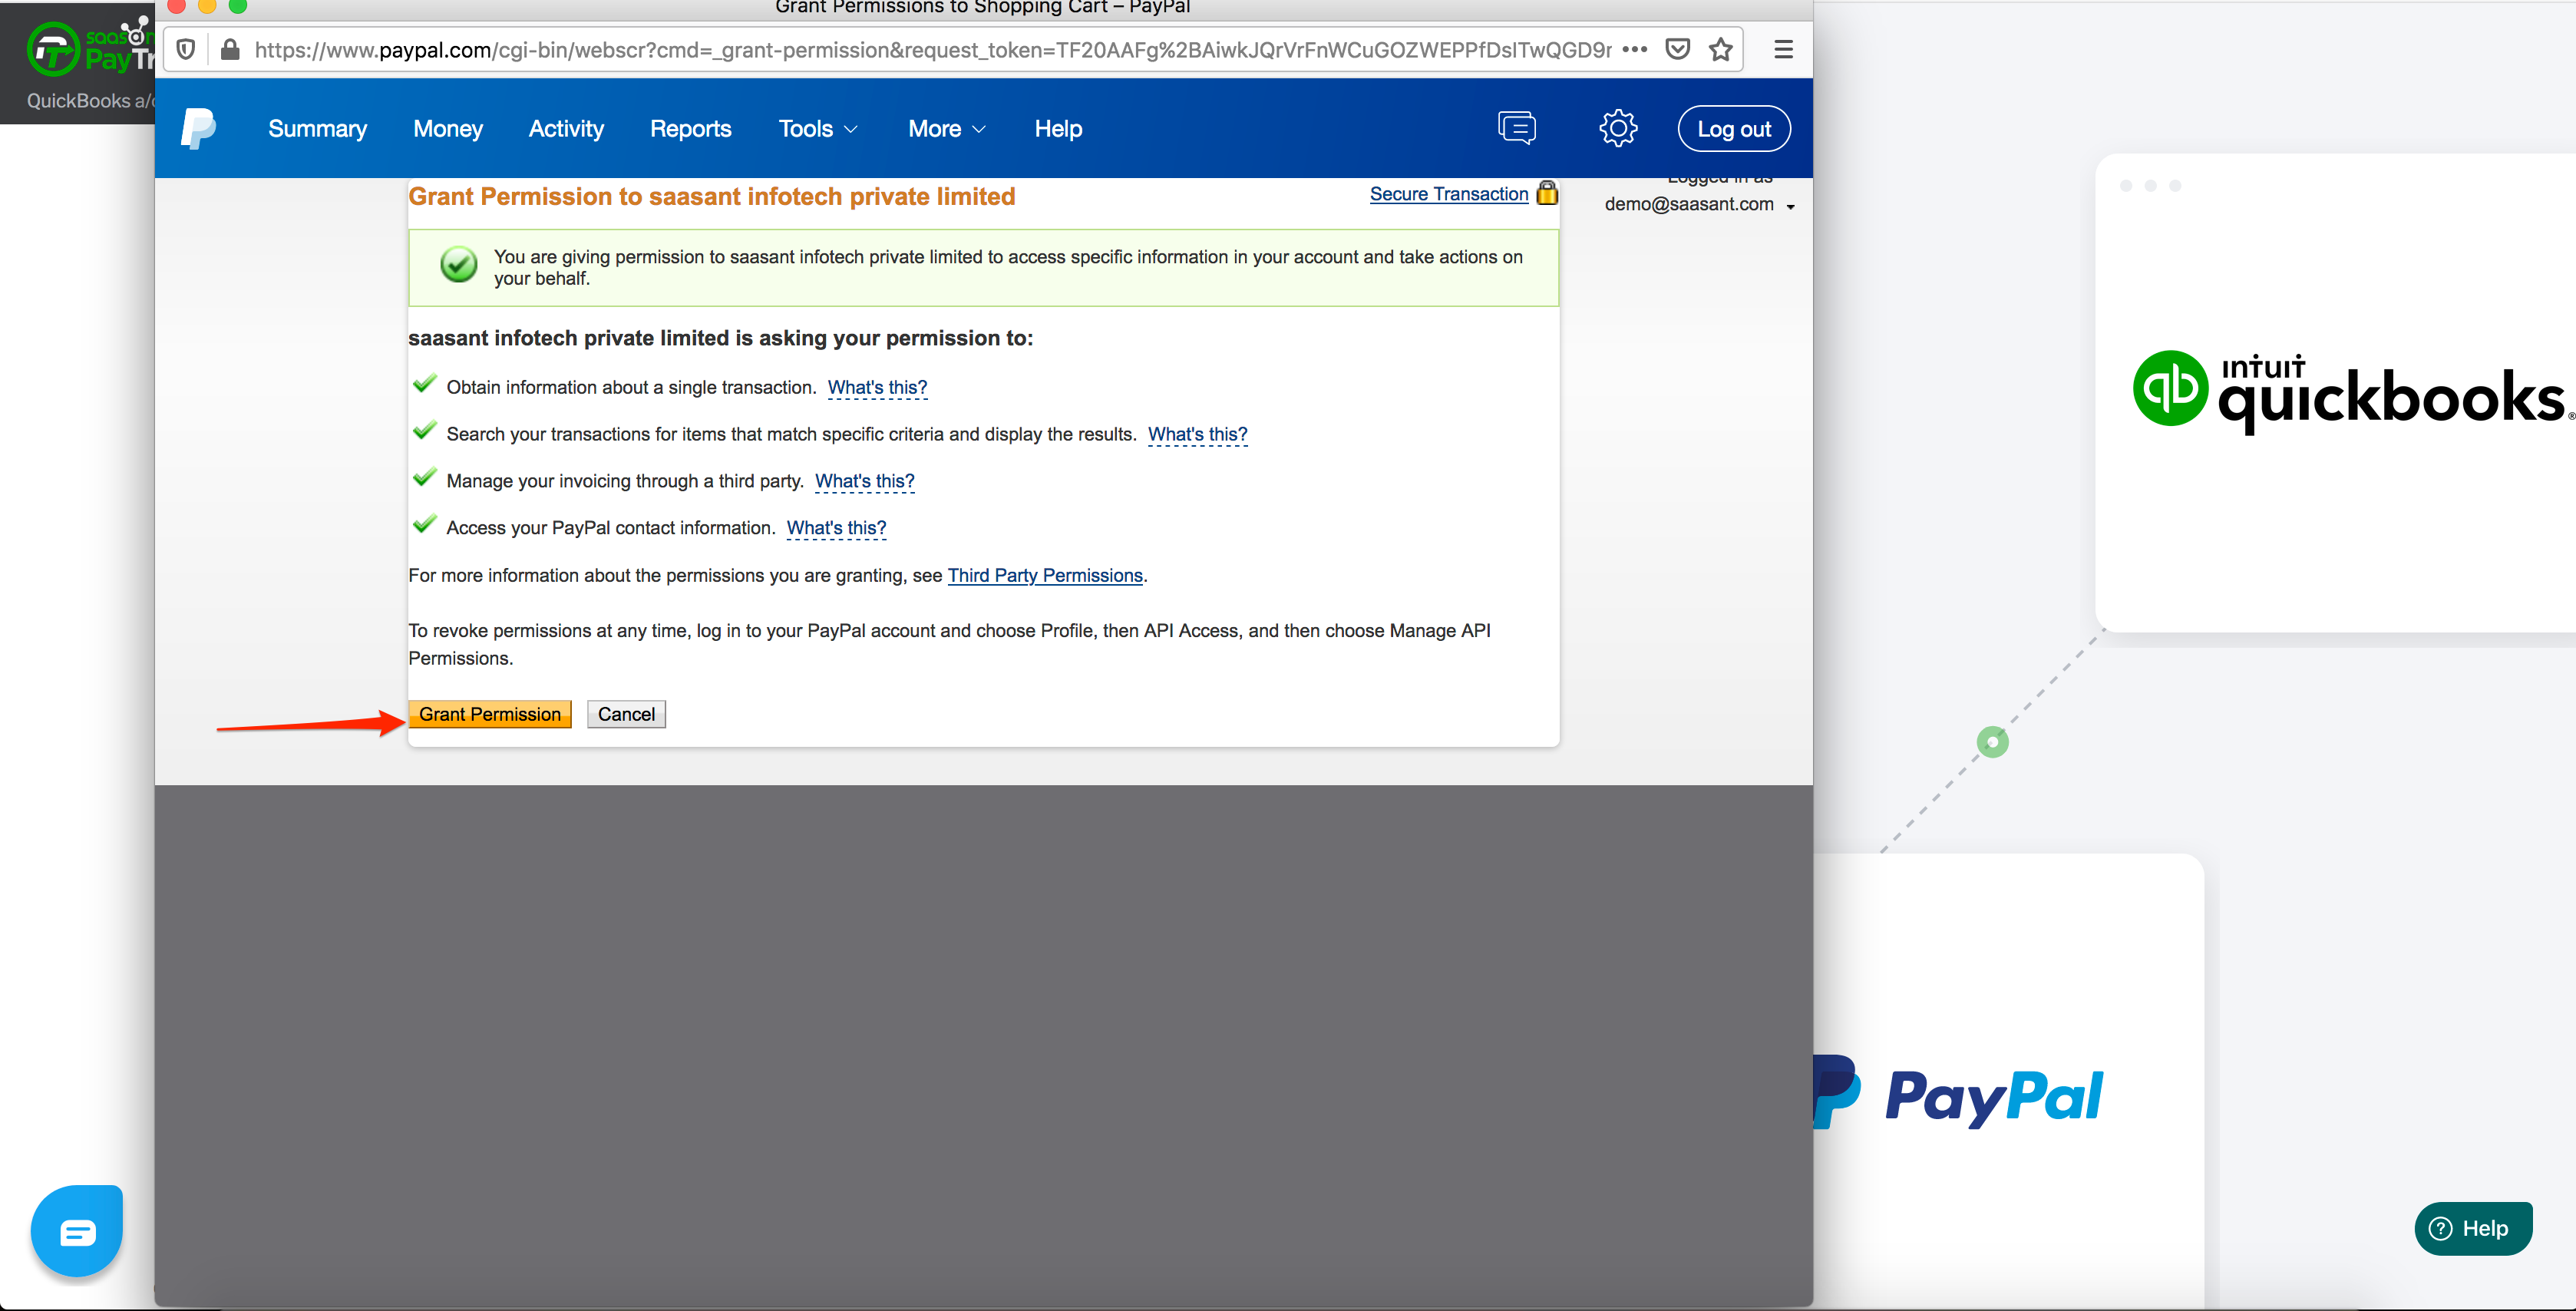 paypal and quickbooks integration